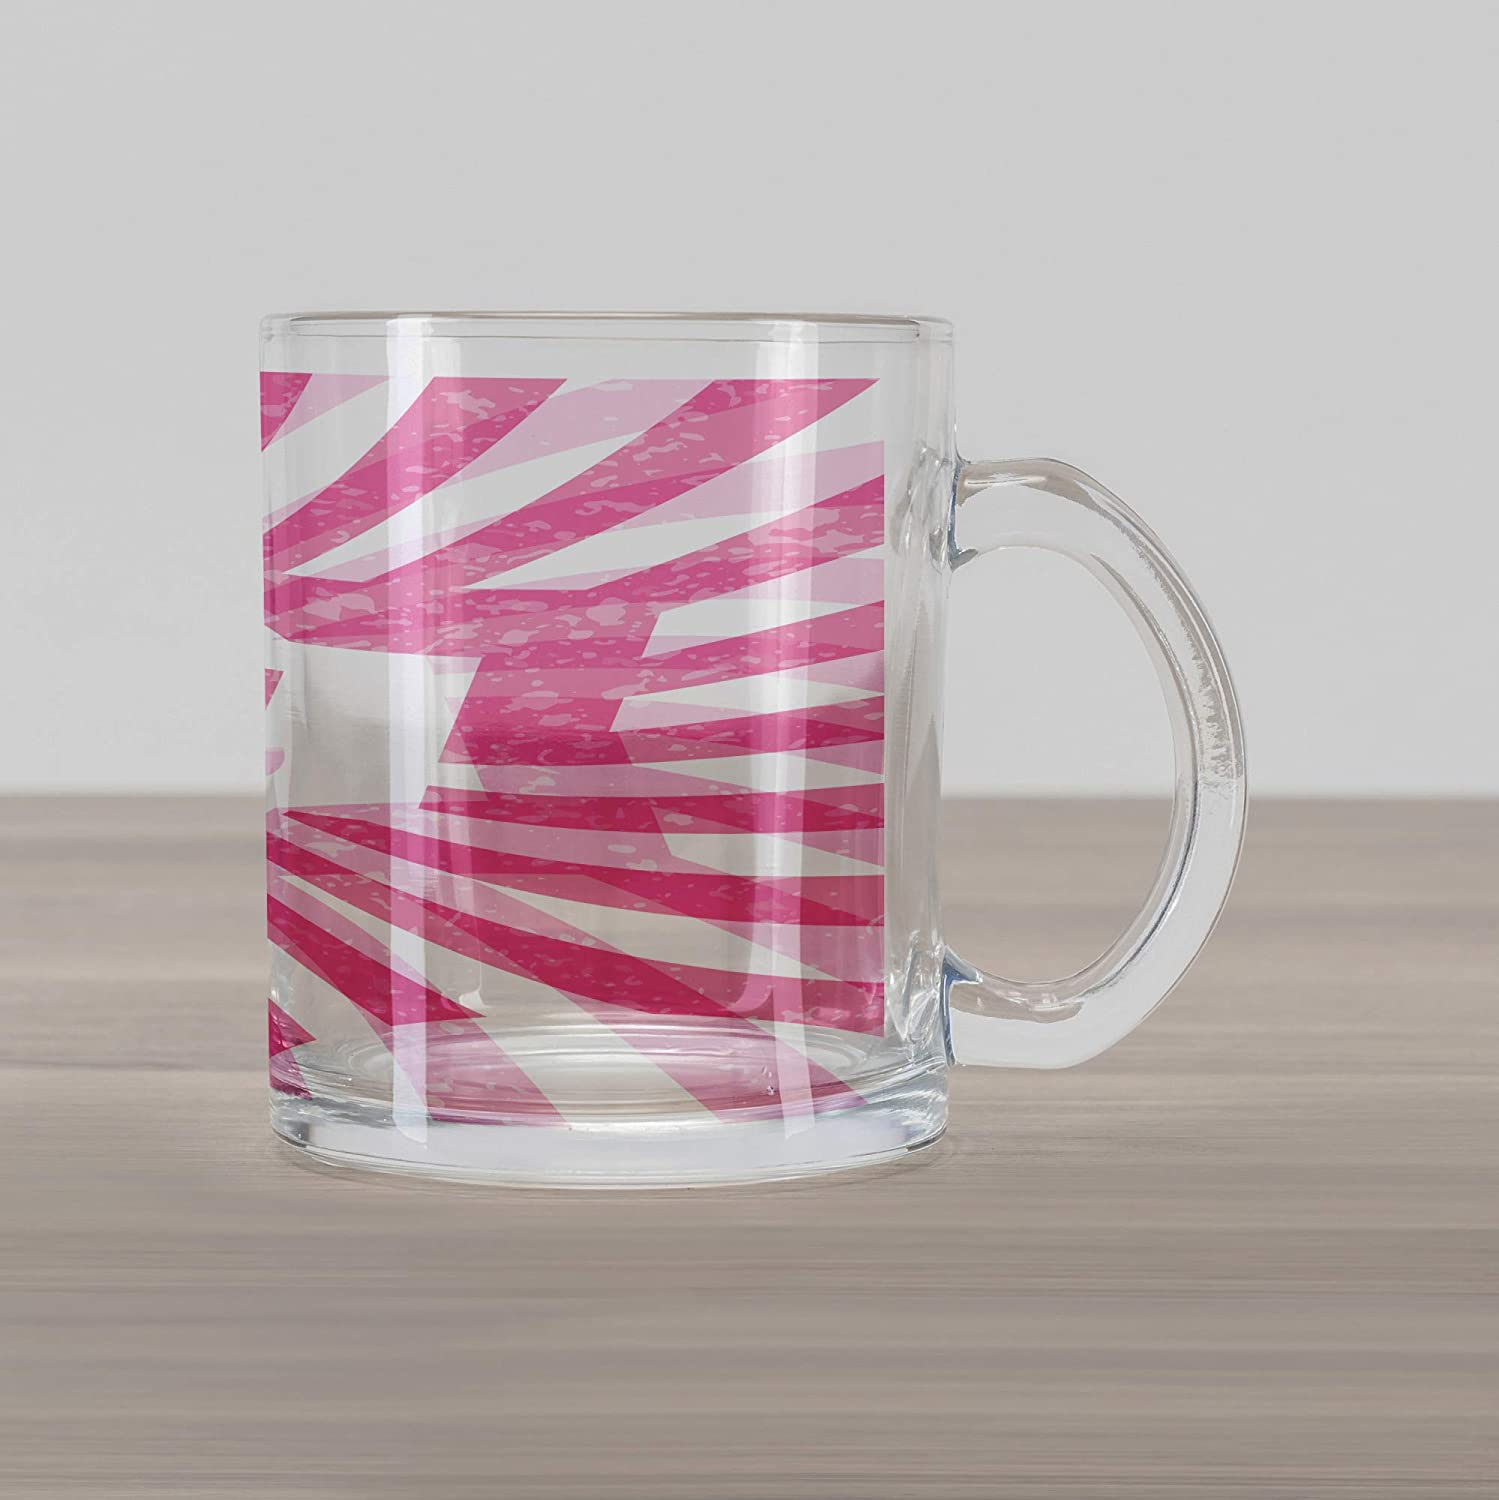 7ad7d194a2d Ambesonne Susan Glass Mug, Female Name with Grunge Effect Birthday Girl  Celebration Striped Backdrop, Printed Clear Glass Coffee Mug Cup for  Beverages Water ...